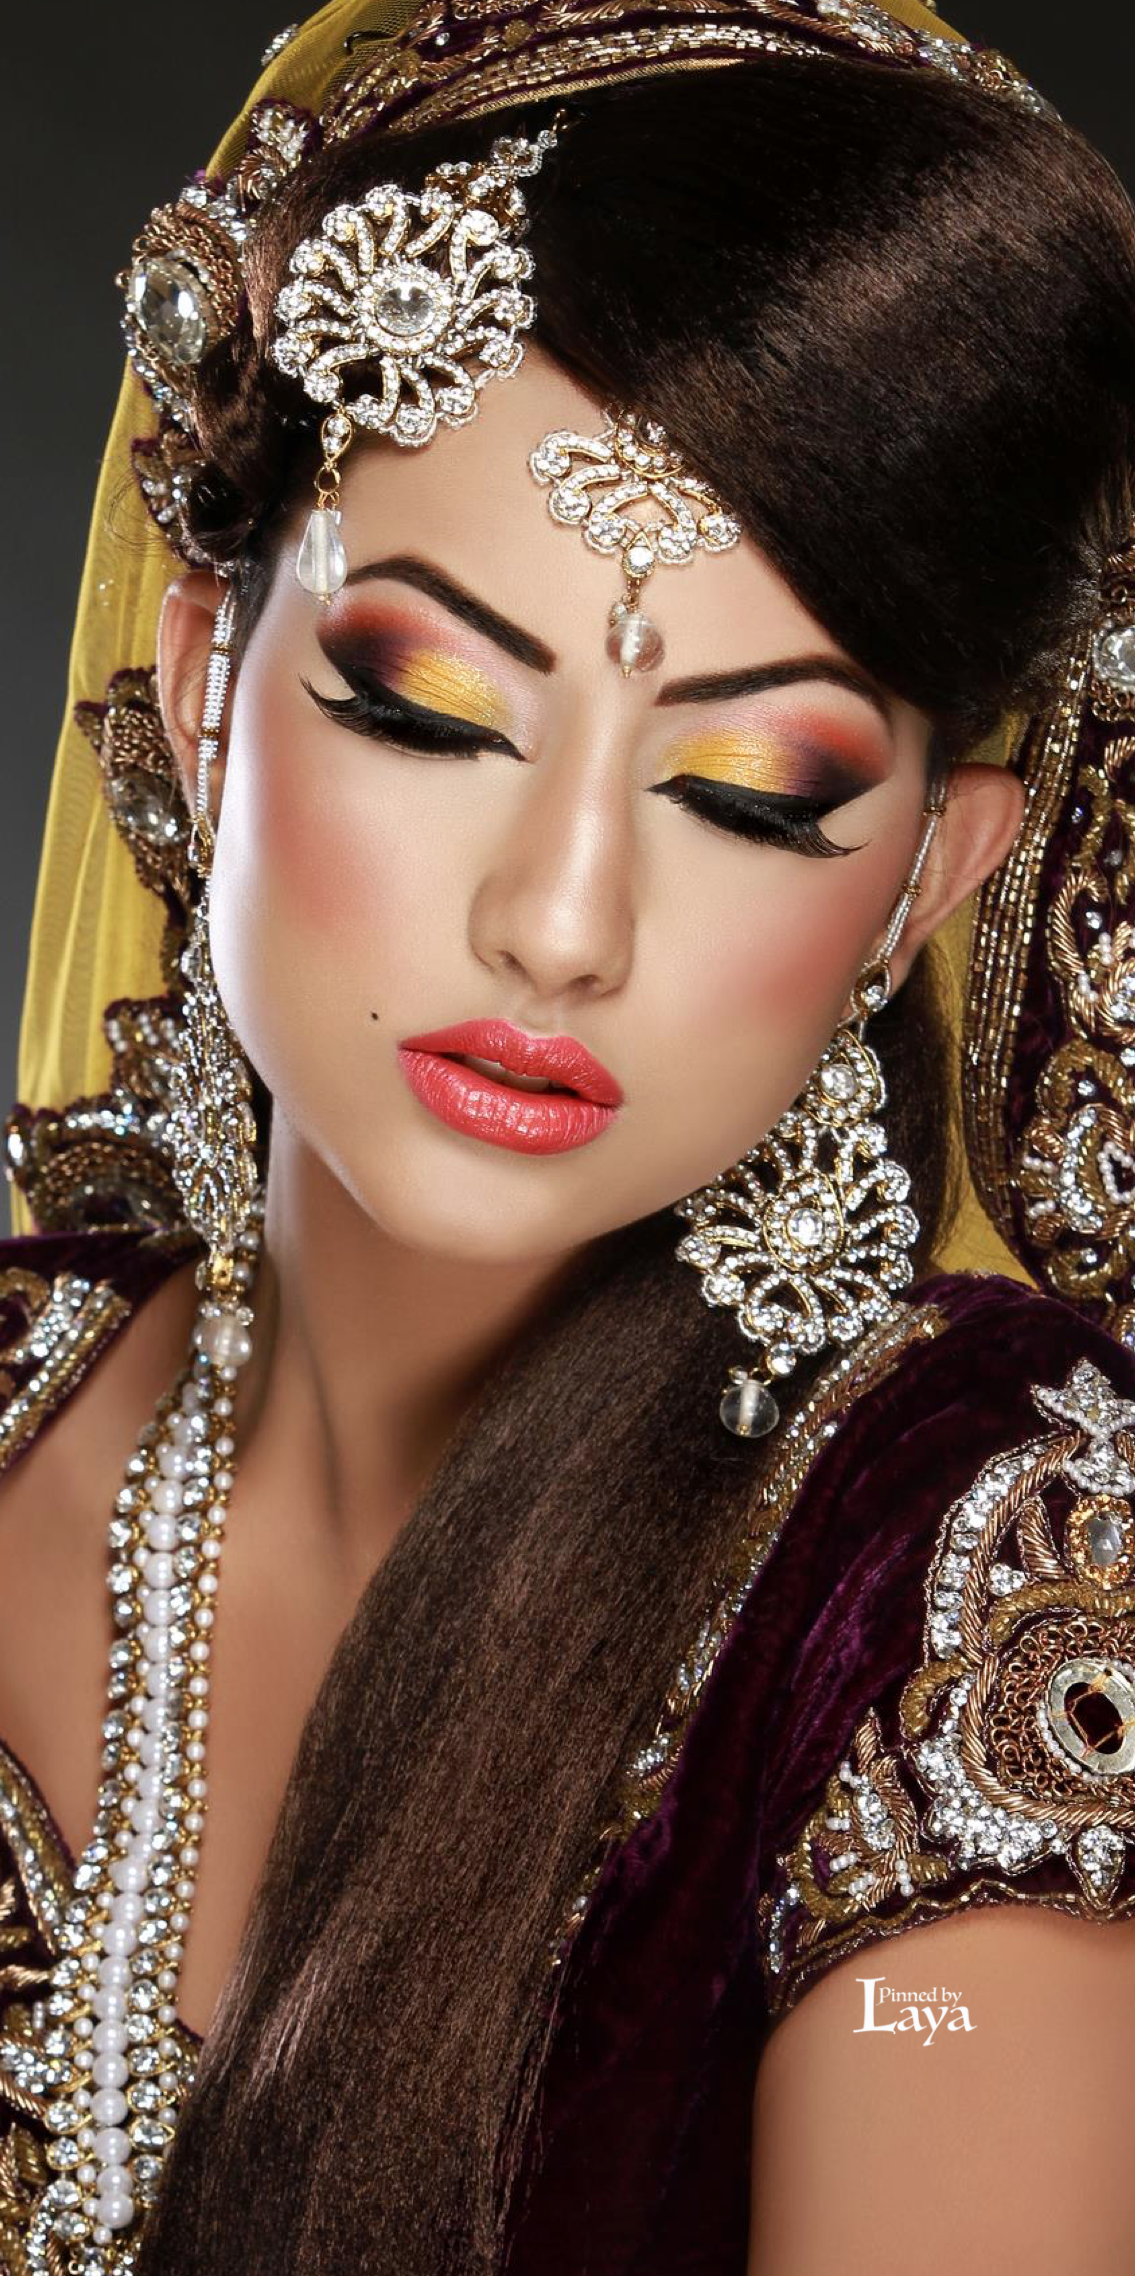 ♔LAYA♔INDIAN BRIDE♔ Pakistani bridal makeup, Asian